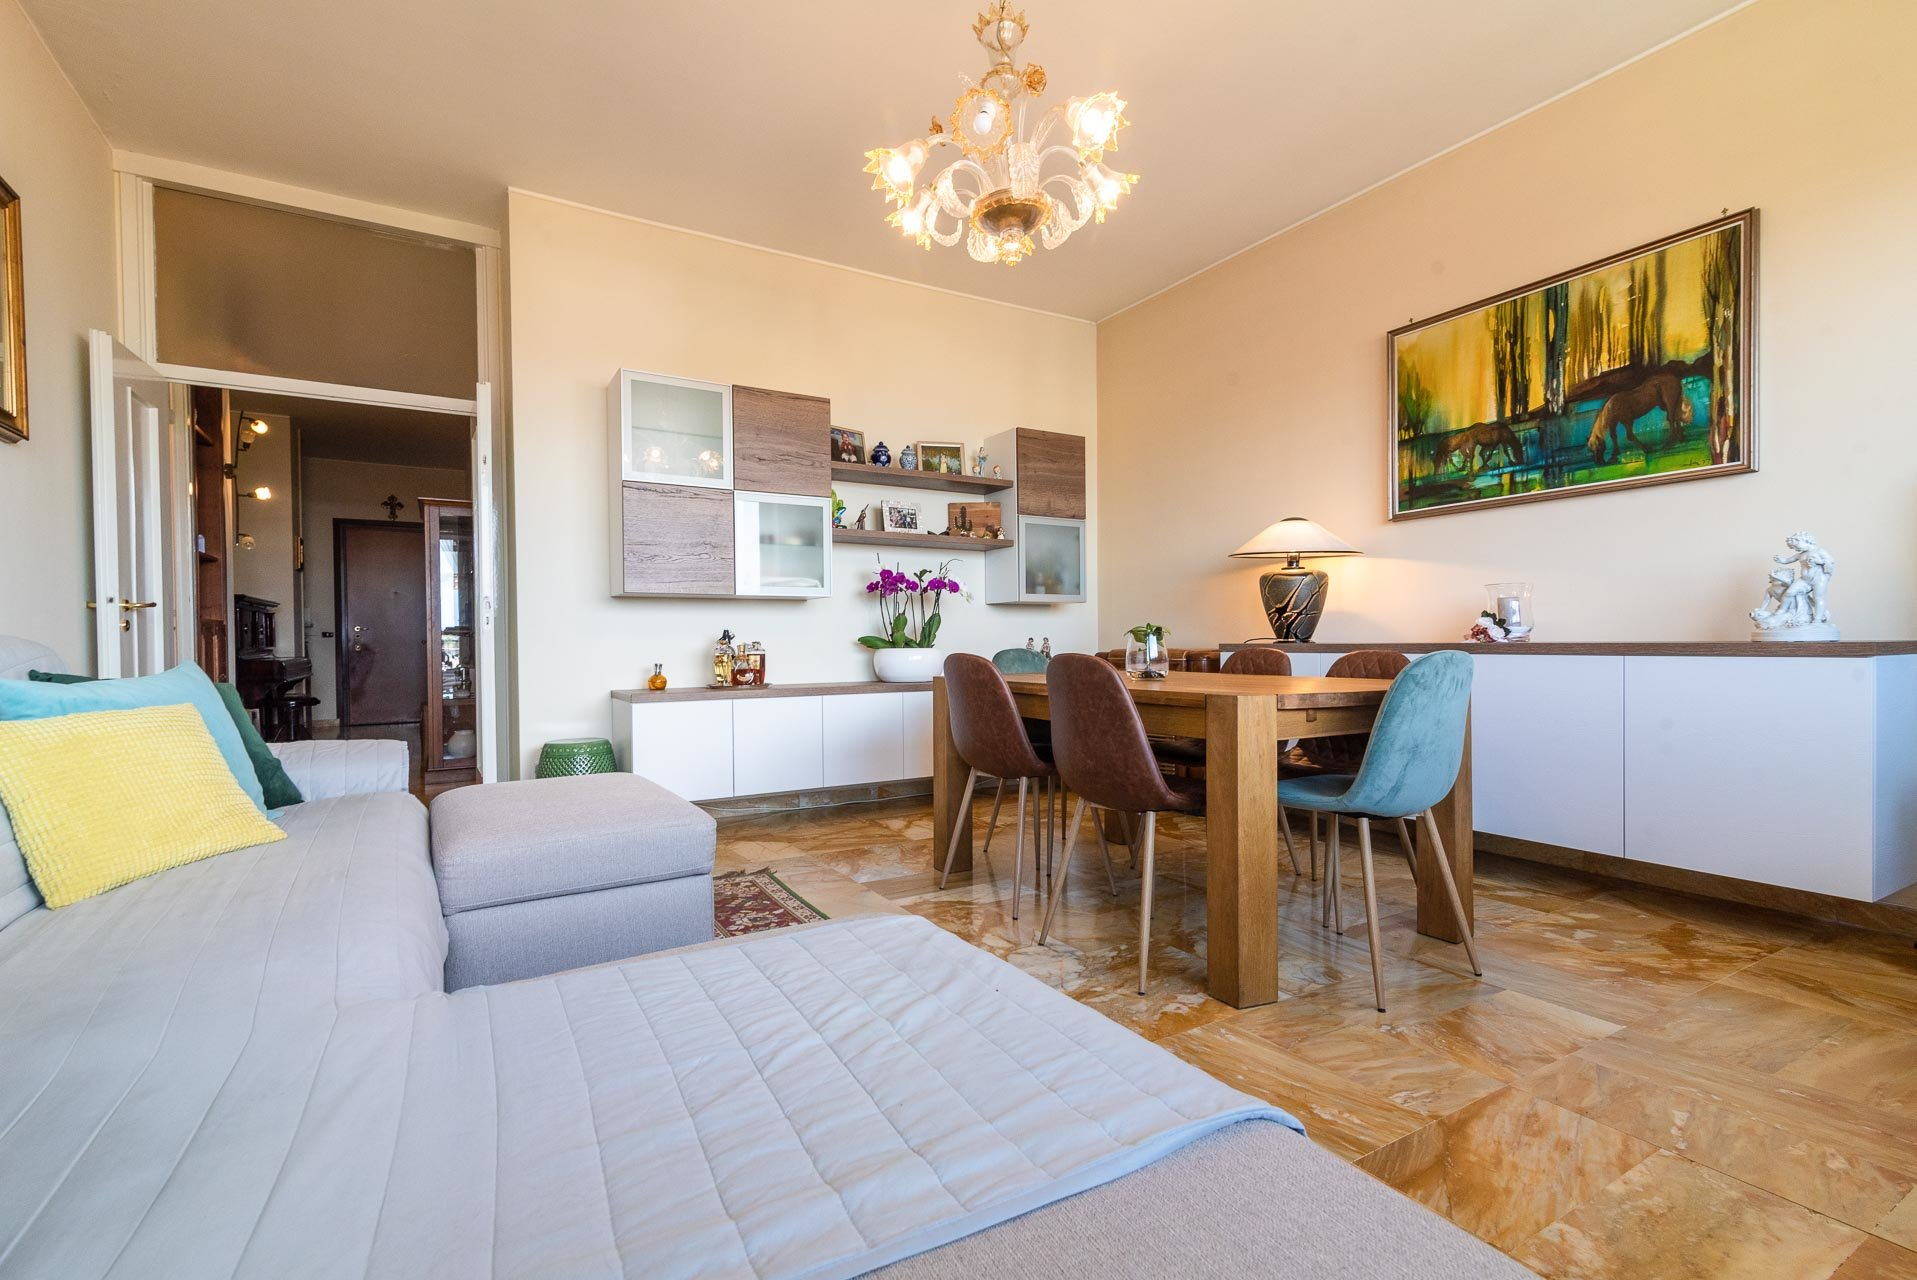 Apartment for sale in Stresa centre - living area